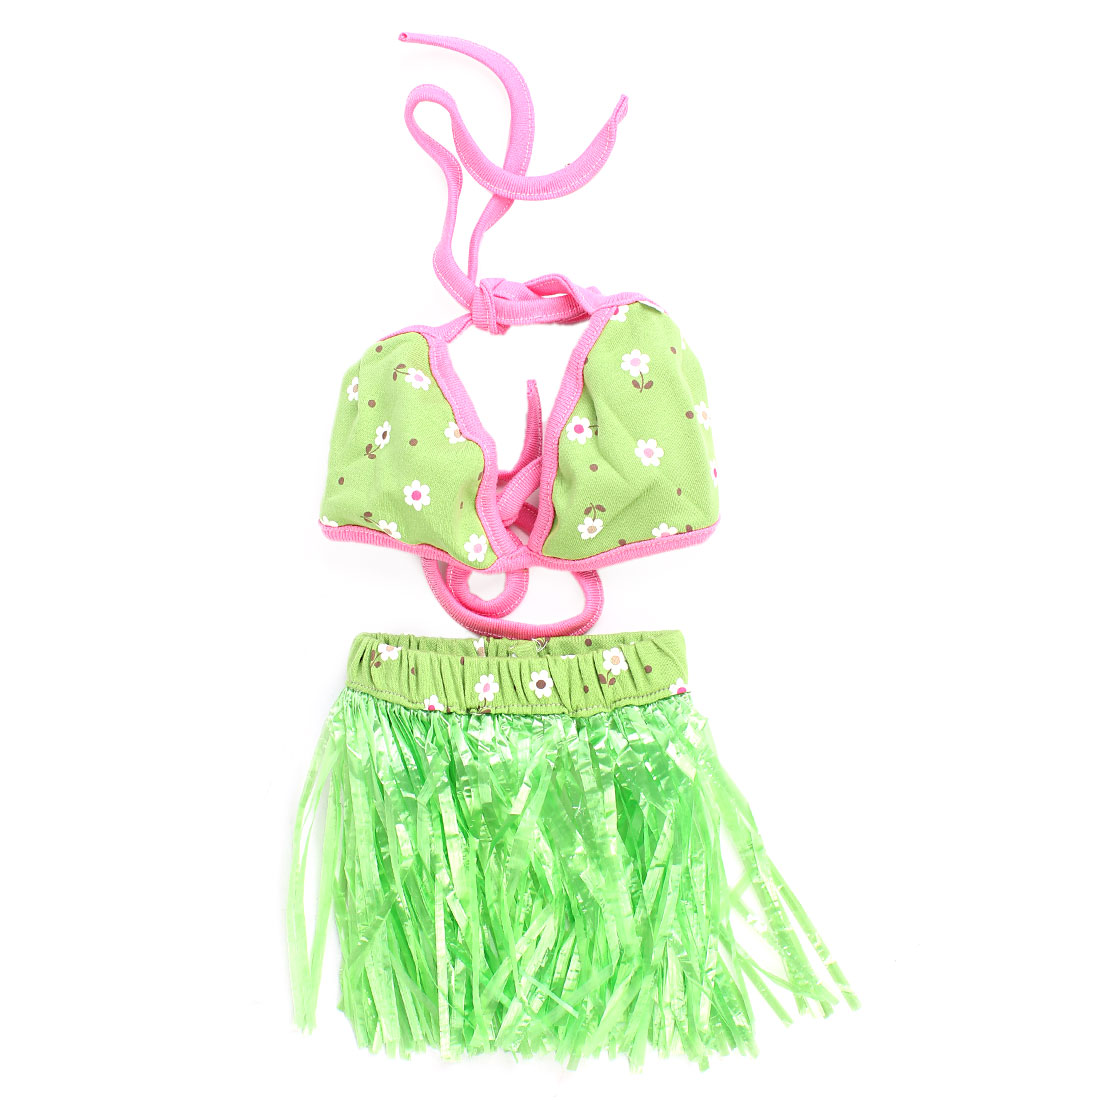 Green Fuchsia Self Tie Pet Dog Puppy Bikini Summer Cool Swim Suit Apparal Skirt Dress Size M